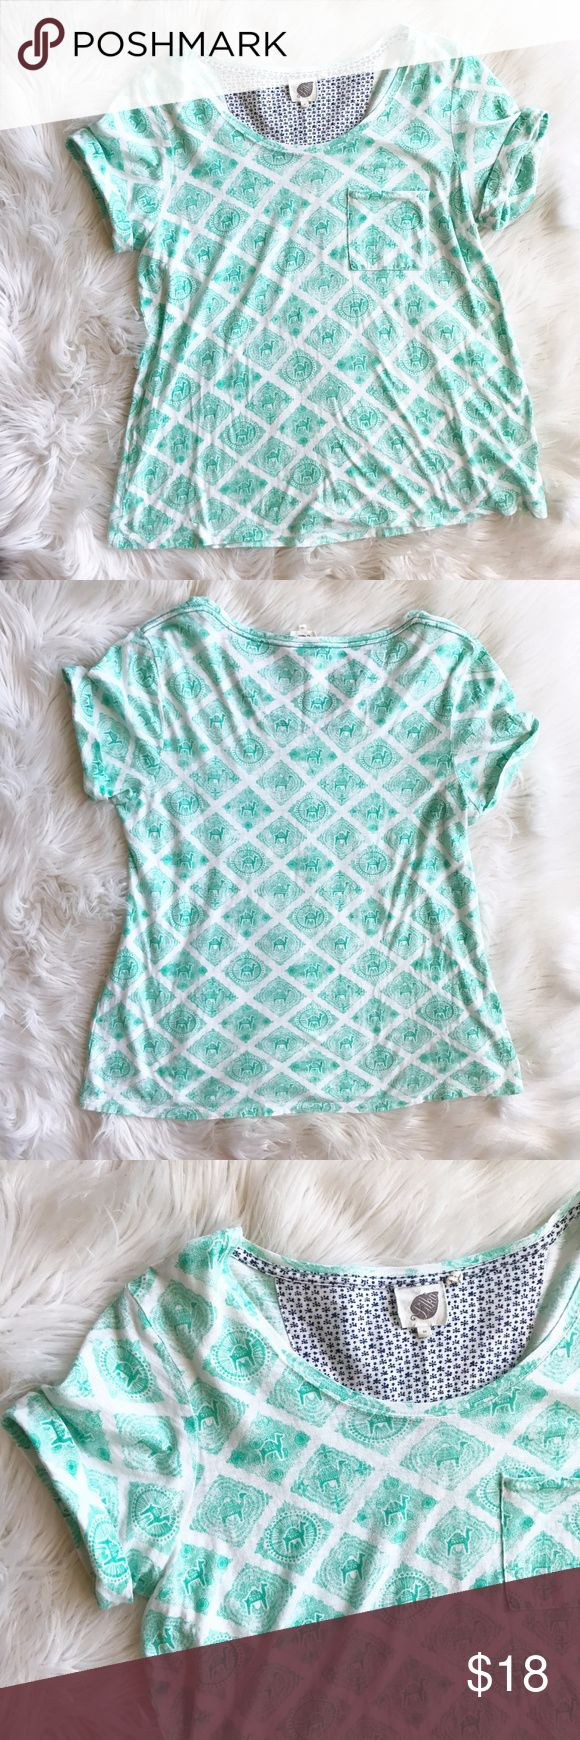 Anthropologie Lika Camel Tee Shirt Excellent condition tee shirt by Lika for Anthropologie. White with teal/aqua camel print all over. Size medium. Semi loose fit. Measurements to come. No trades, offers welcome. Anthropologie Tops Tees - Short Sleeve